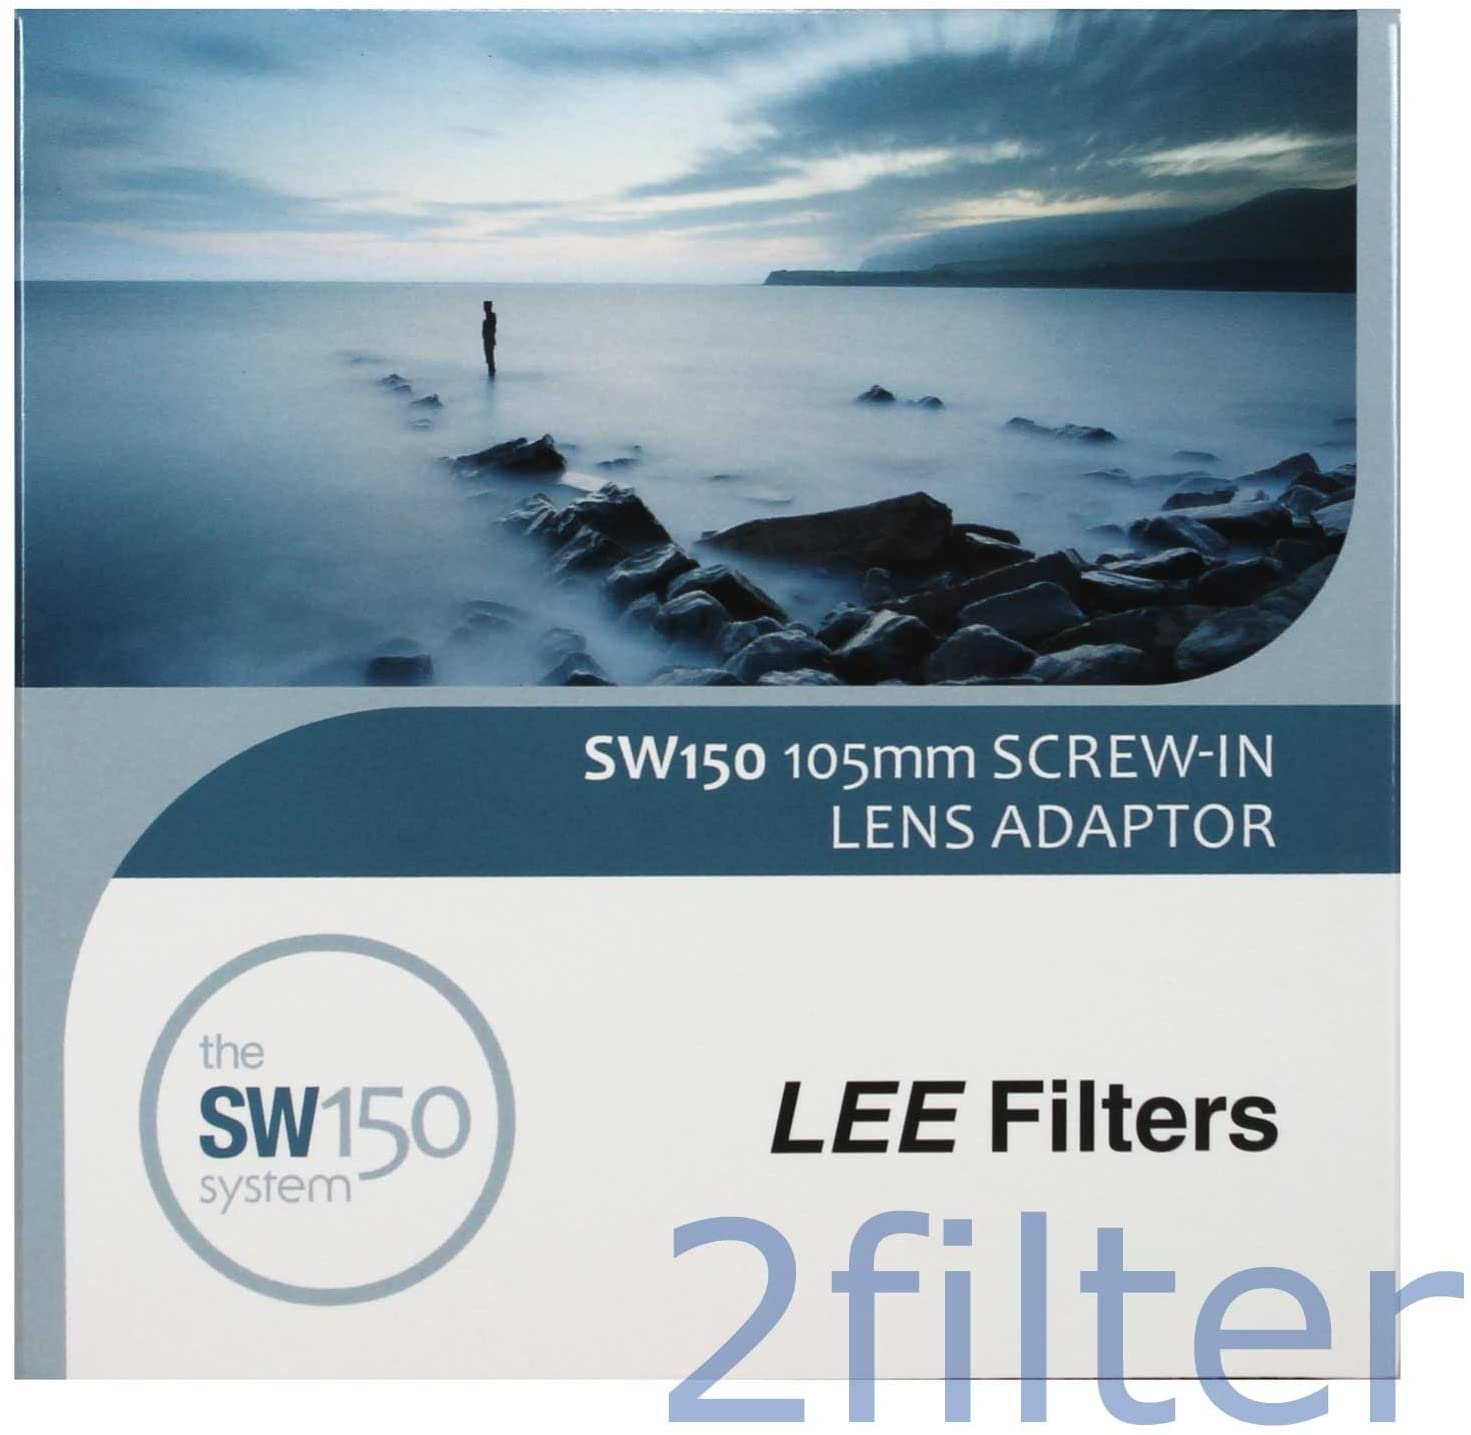 Lee Filters SW150 105mm Screw-in Lens Adapter for SW150 Mark II Holder